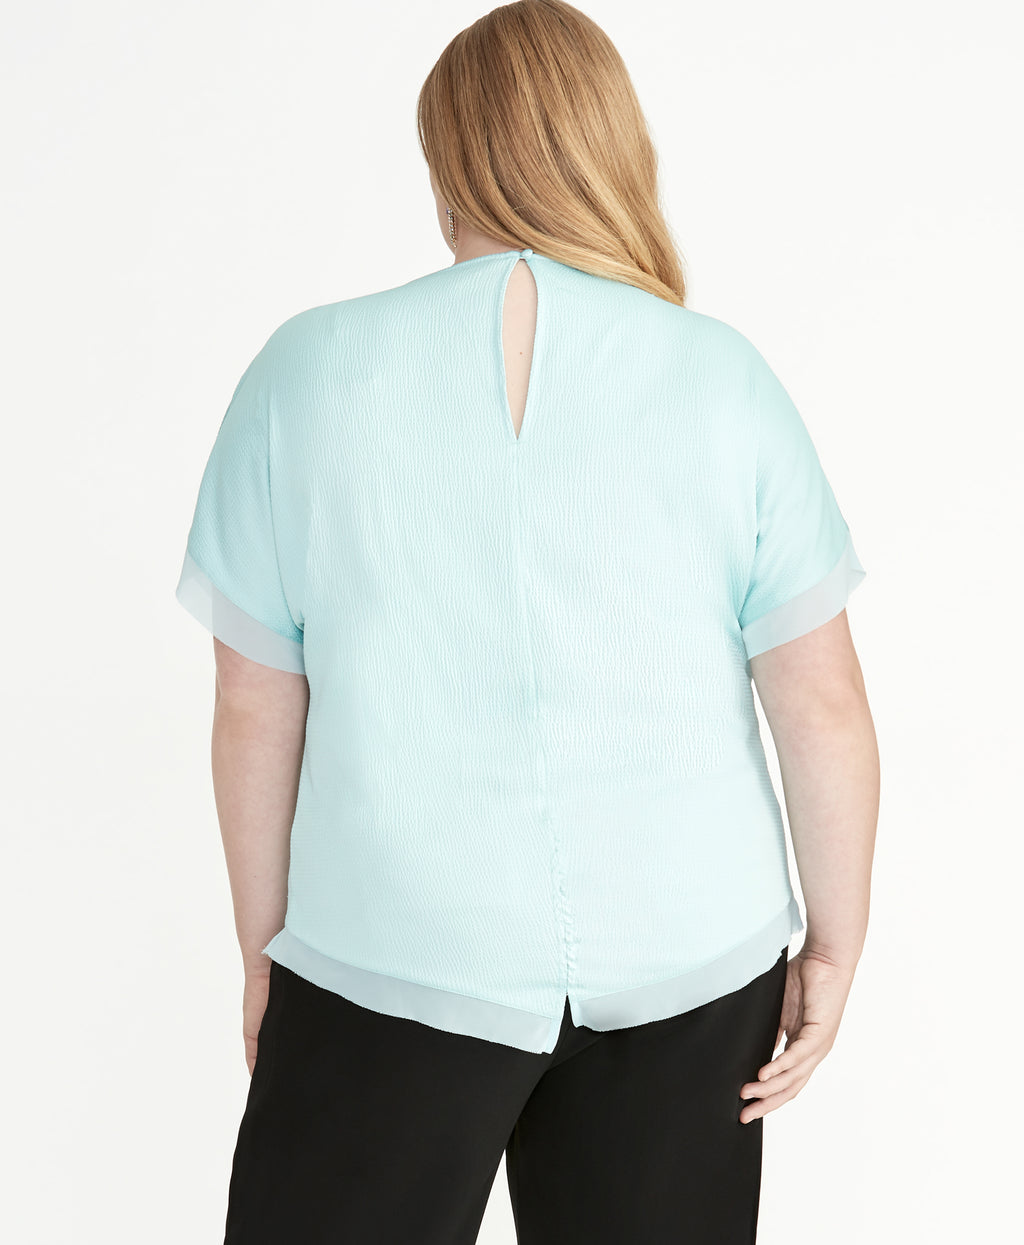 REAGAN SATIN TOP | OCEAN